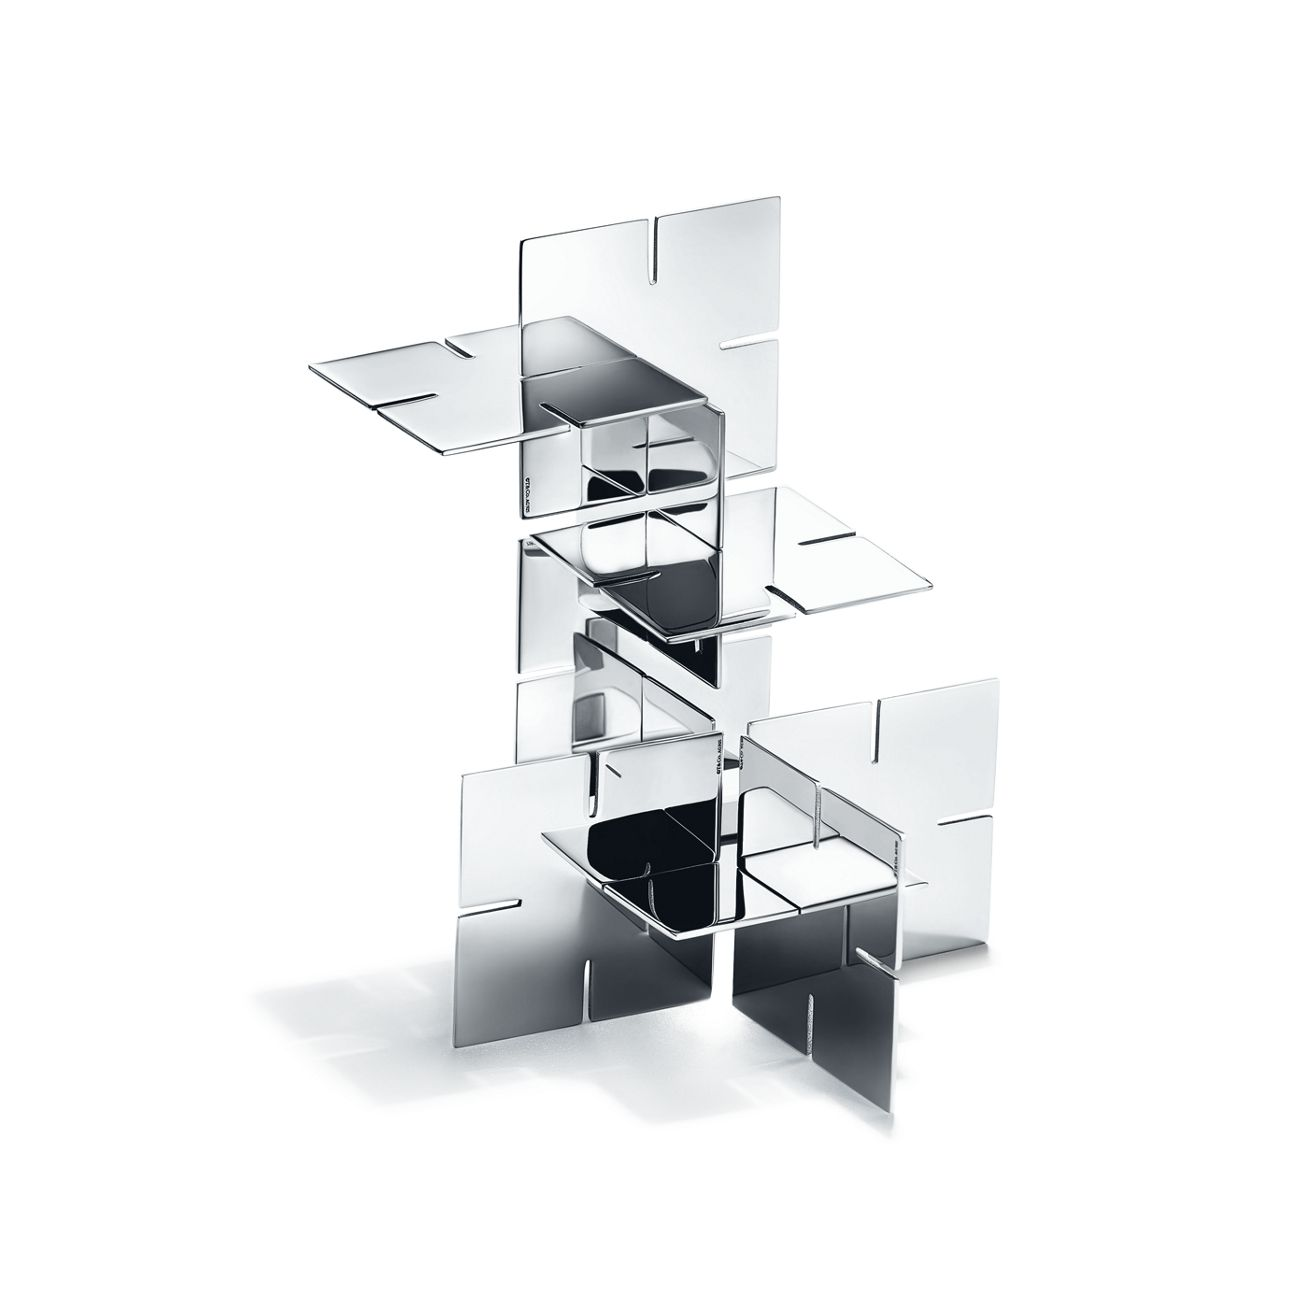 Marvelous photograph of Out of Retirement desk puzzle in sterling silver. Tiffany & Co. with #5A5A71 color and 1308x1308 pixels